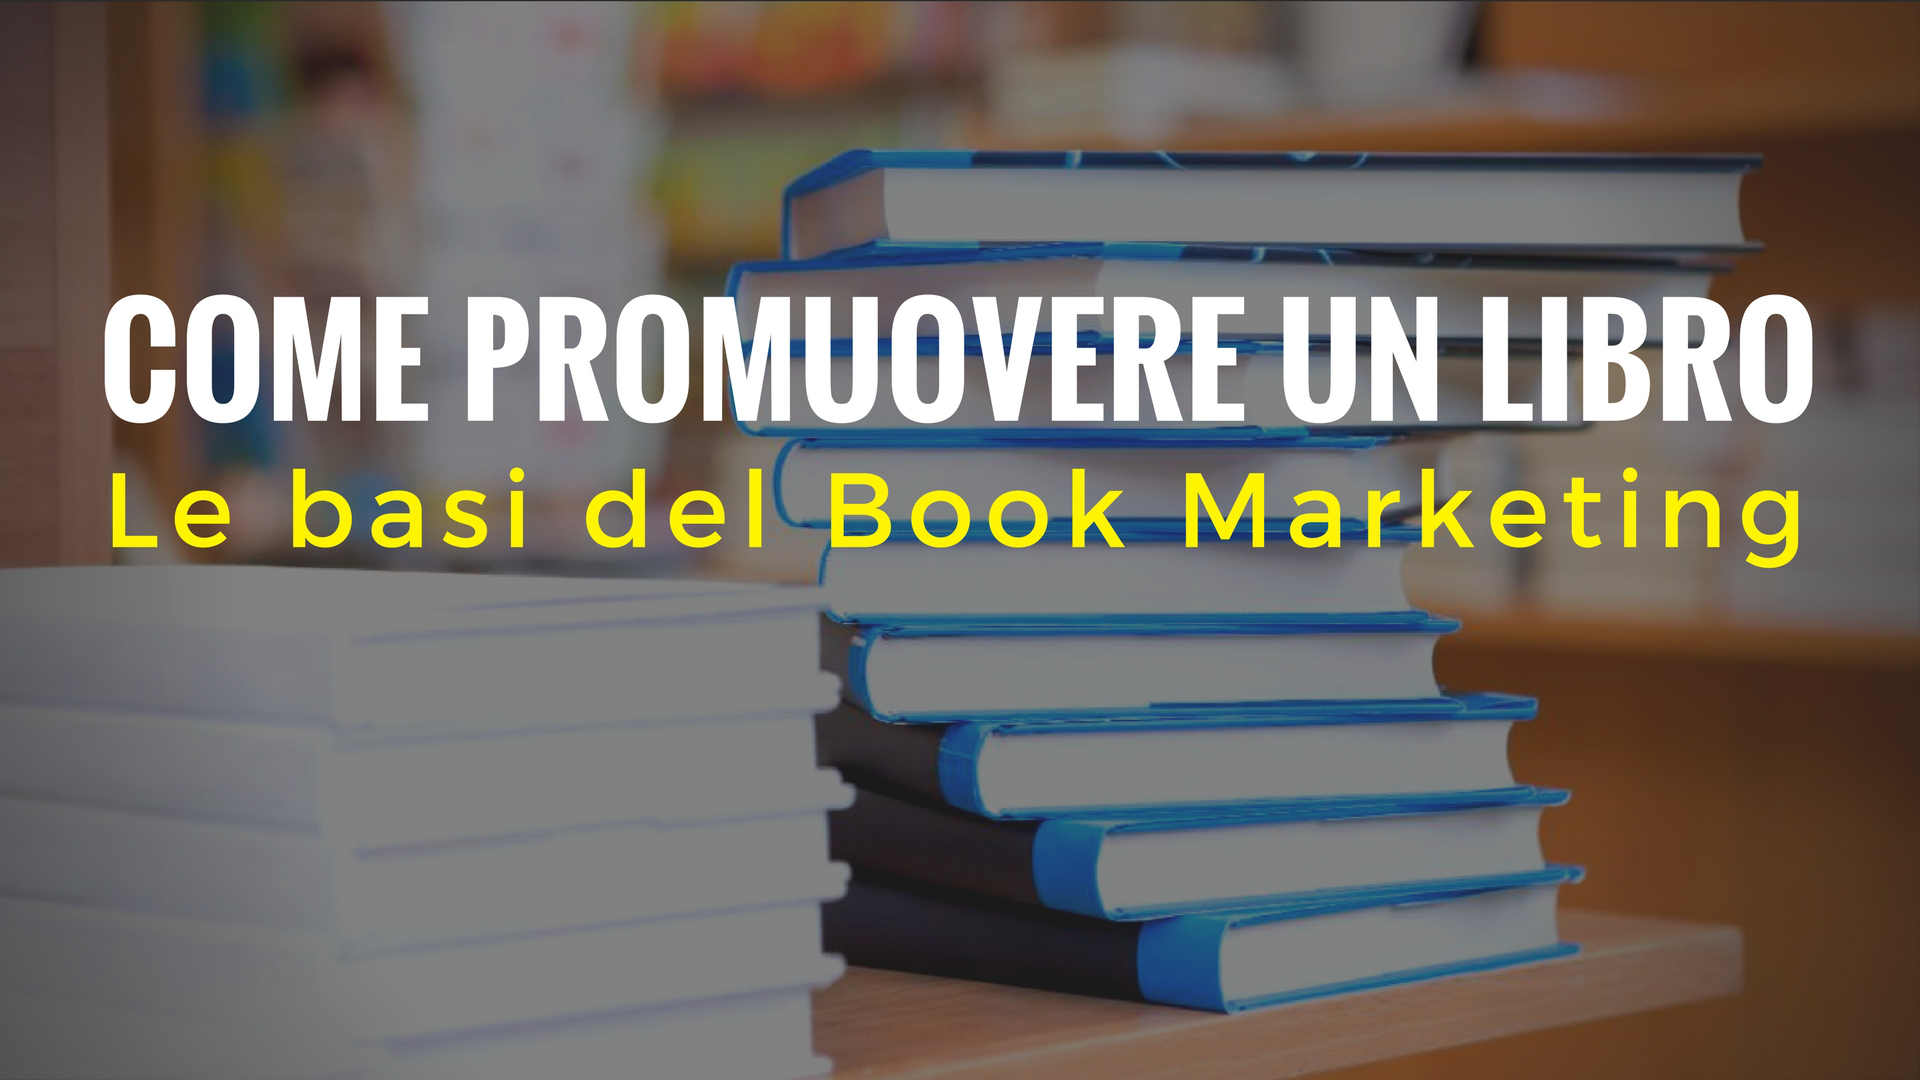 Come promuovere un libro: le basi del Book Marketing